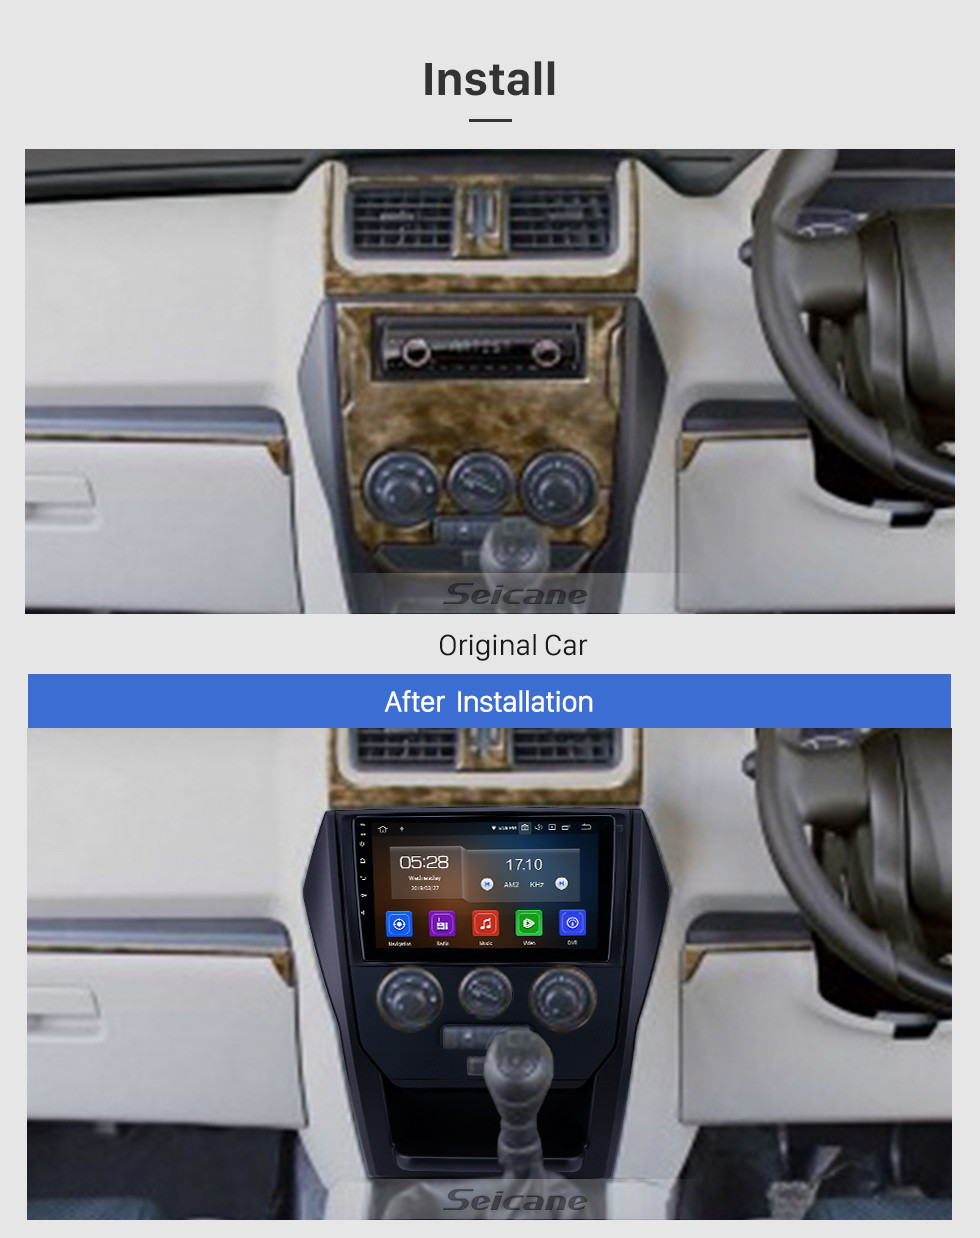 Seicane OEM 9 inch Android 10.0 Radio for 2015 Mahindra Scorpio Manual A/C Bluetooth Wifi HD Touchscreen GPS Navigation Carplay support DAB+ Rear camera